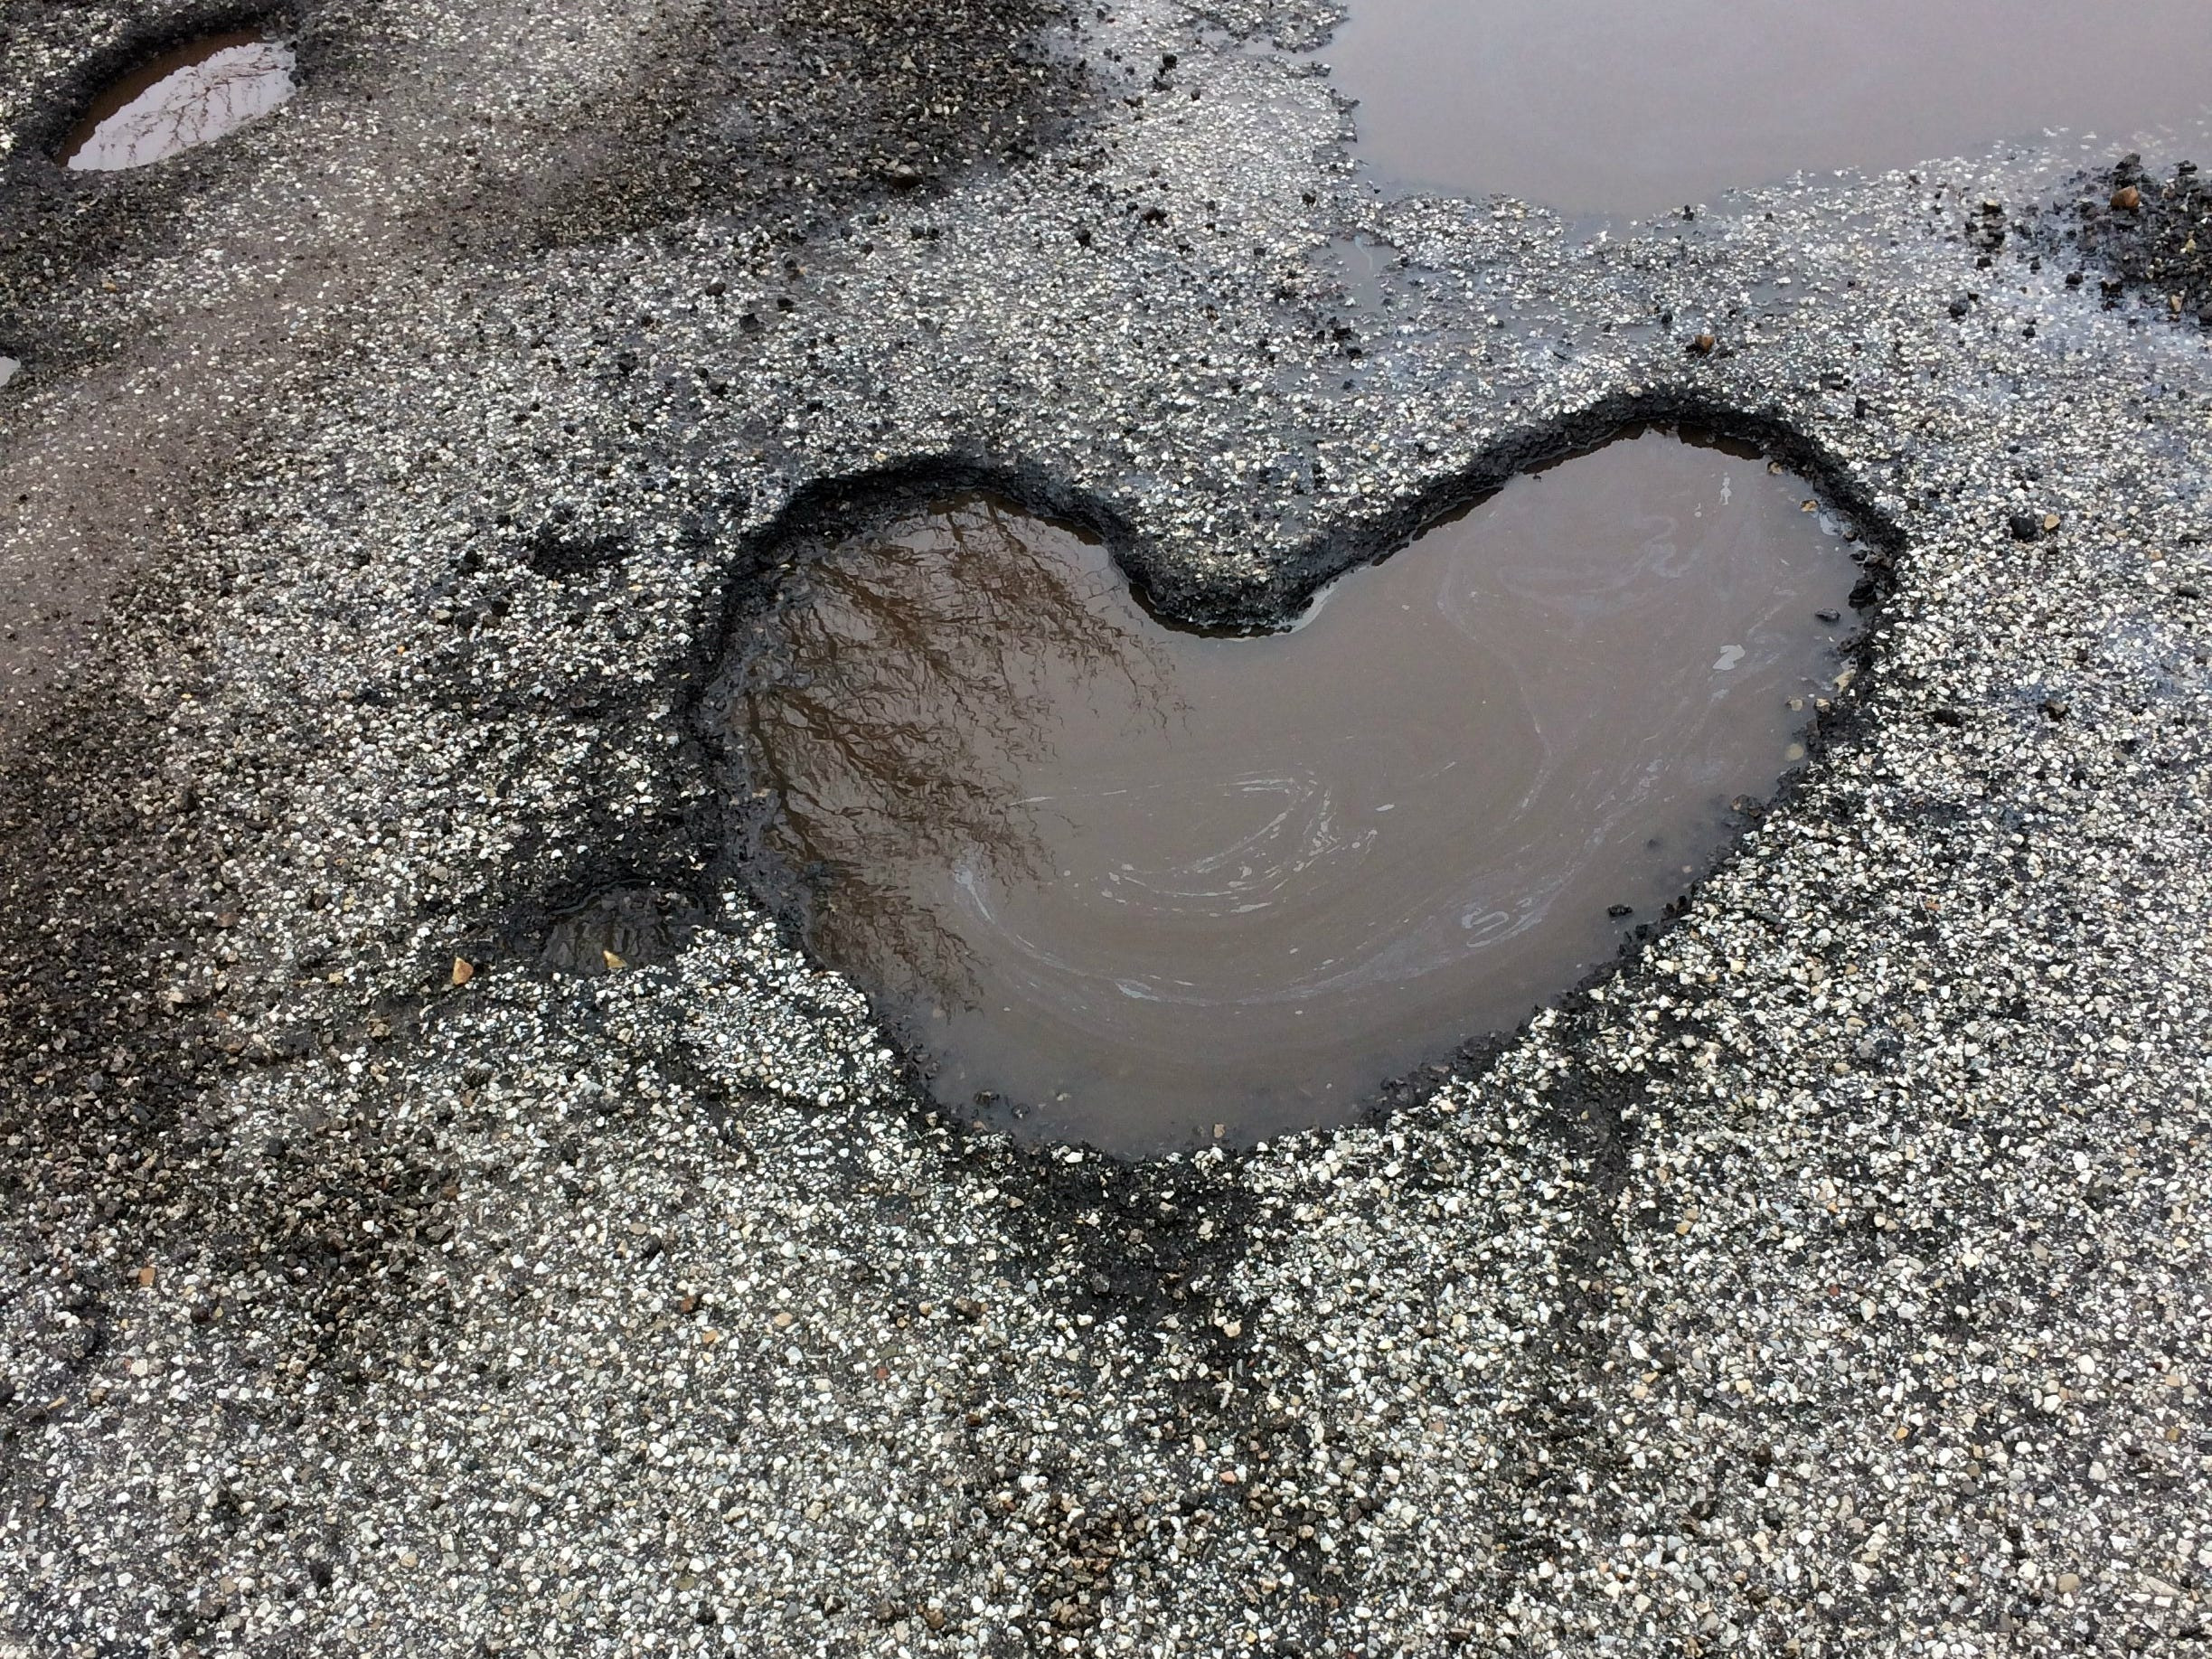 Indianapolis man finds perfect heart-shaped pothole for Valentine's Day